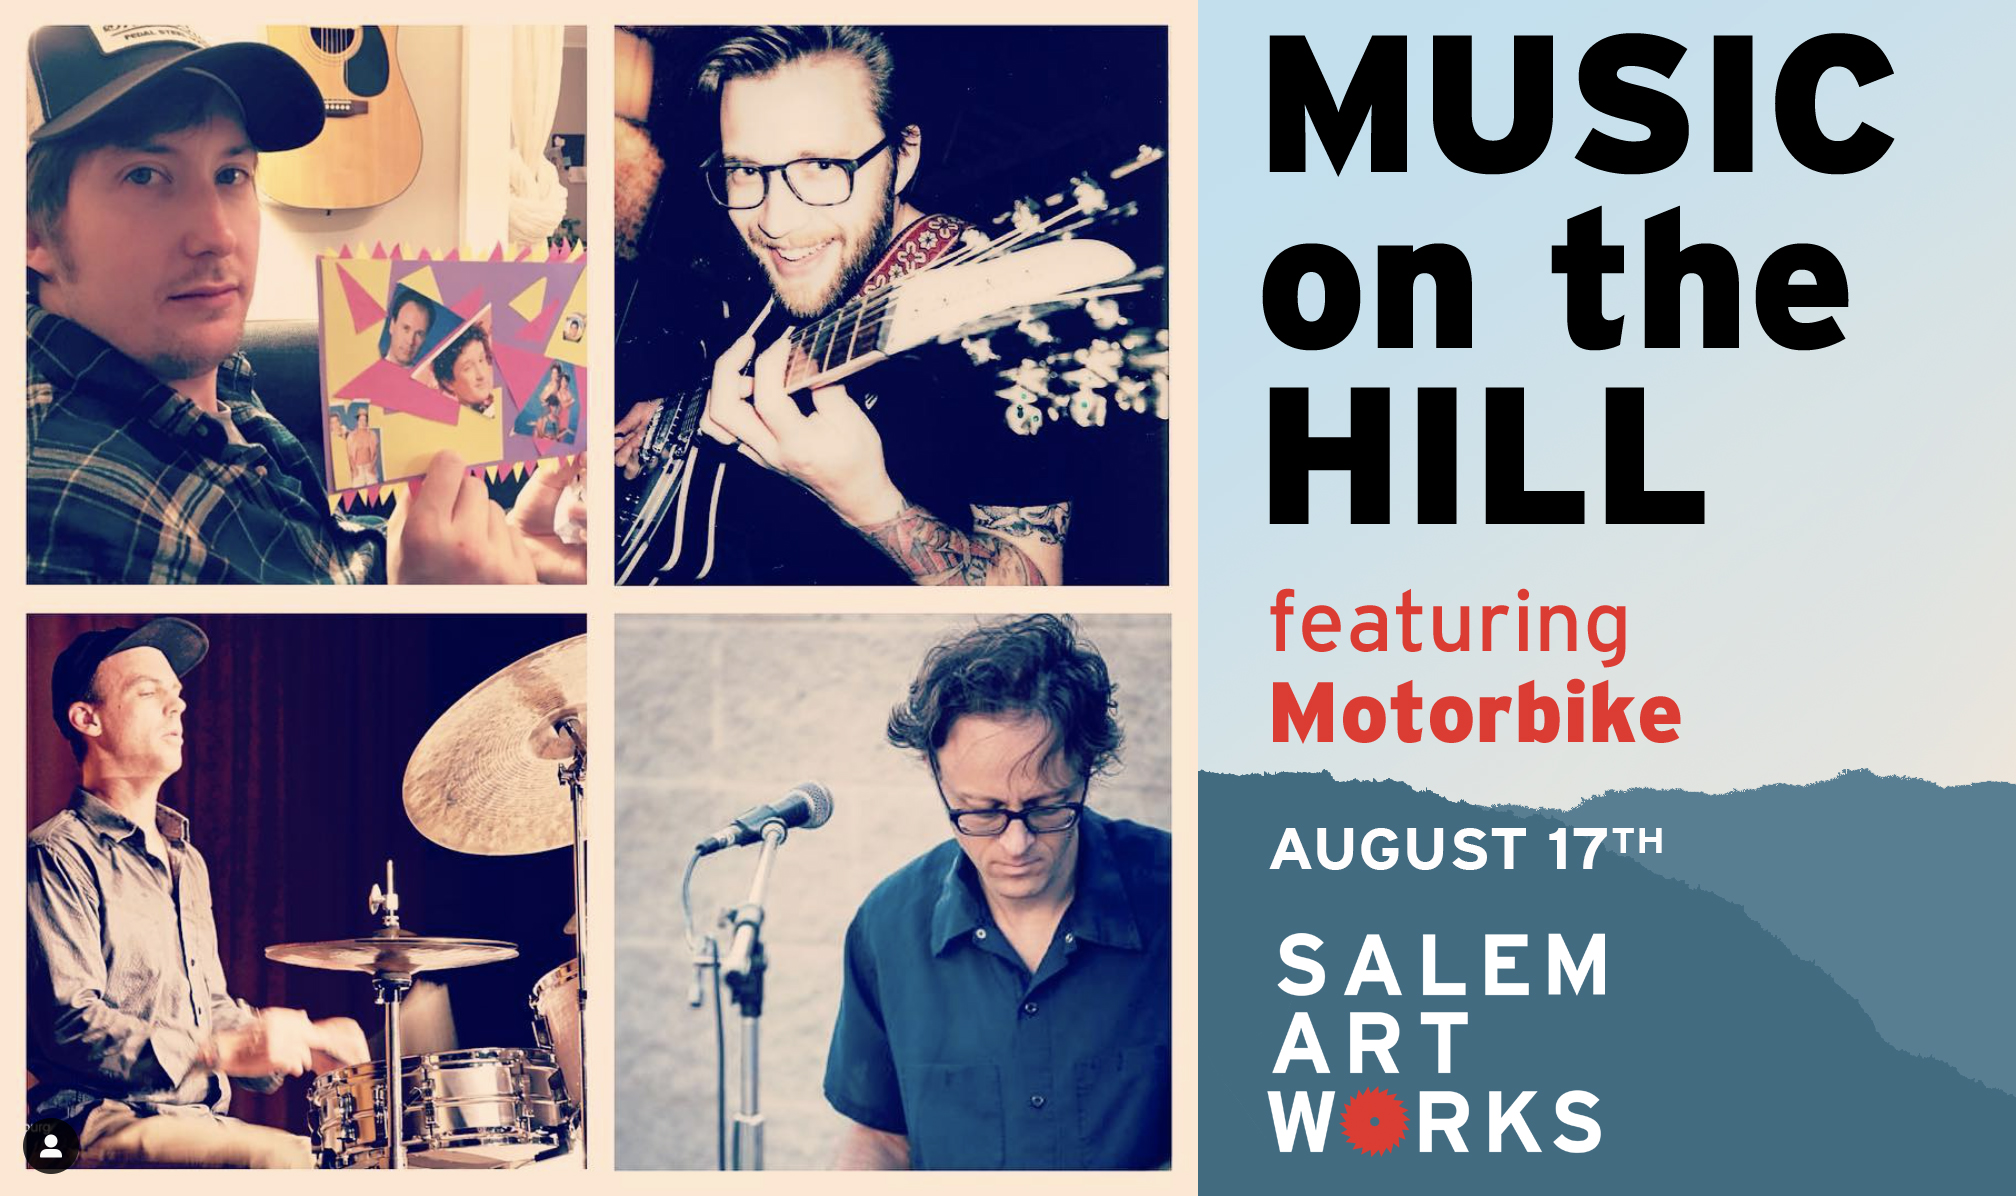 Music on the Hill_Motorbike_with_date.jpg